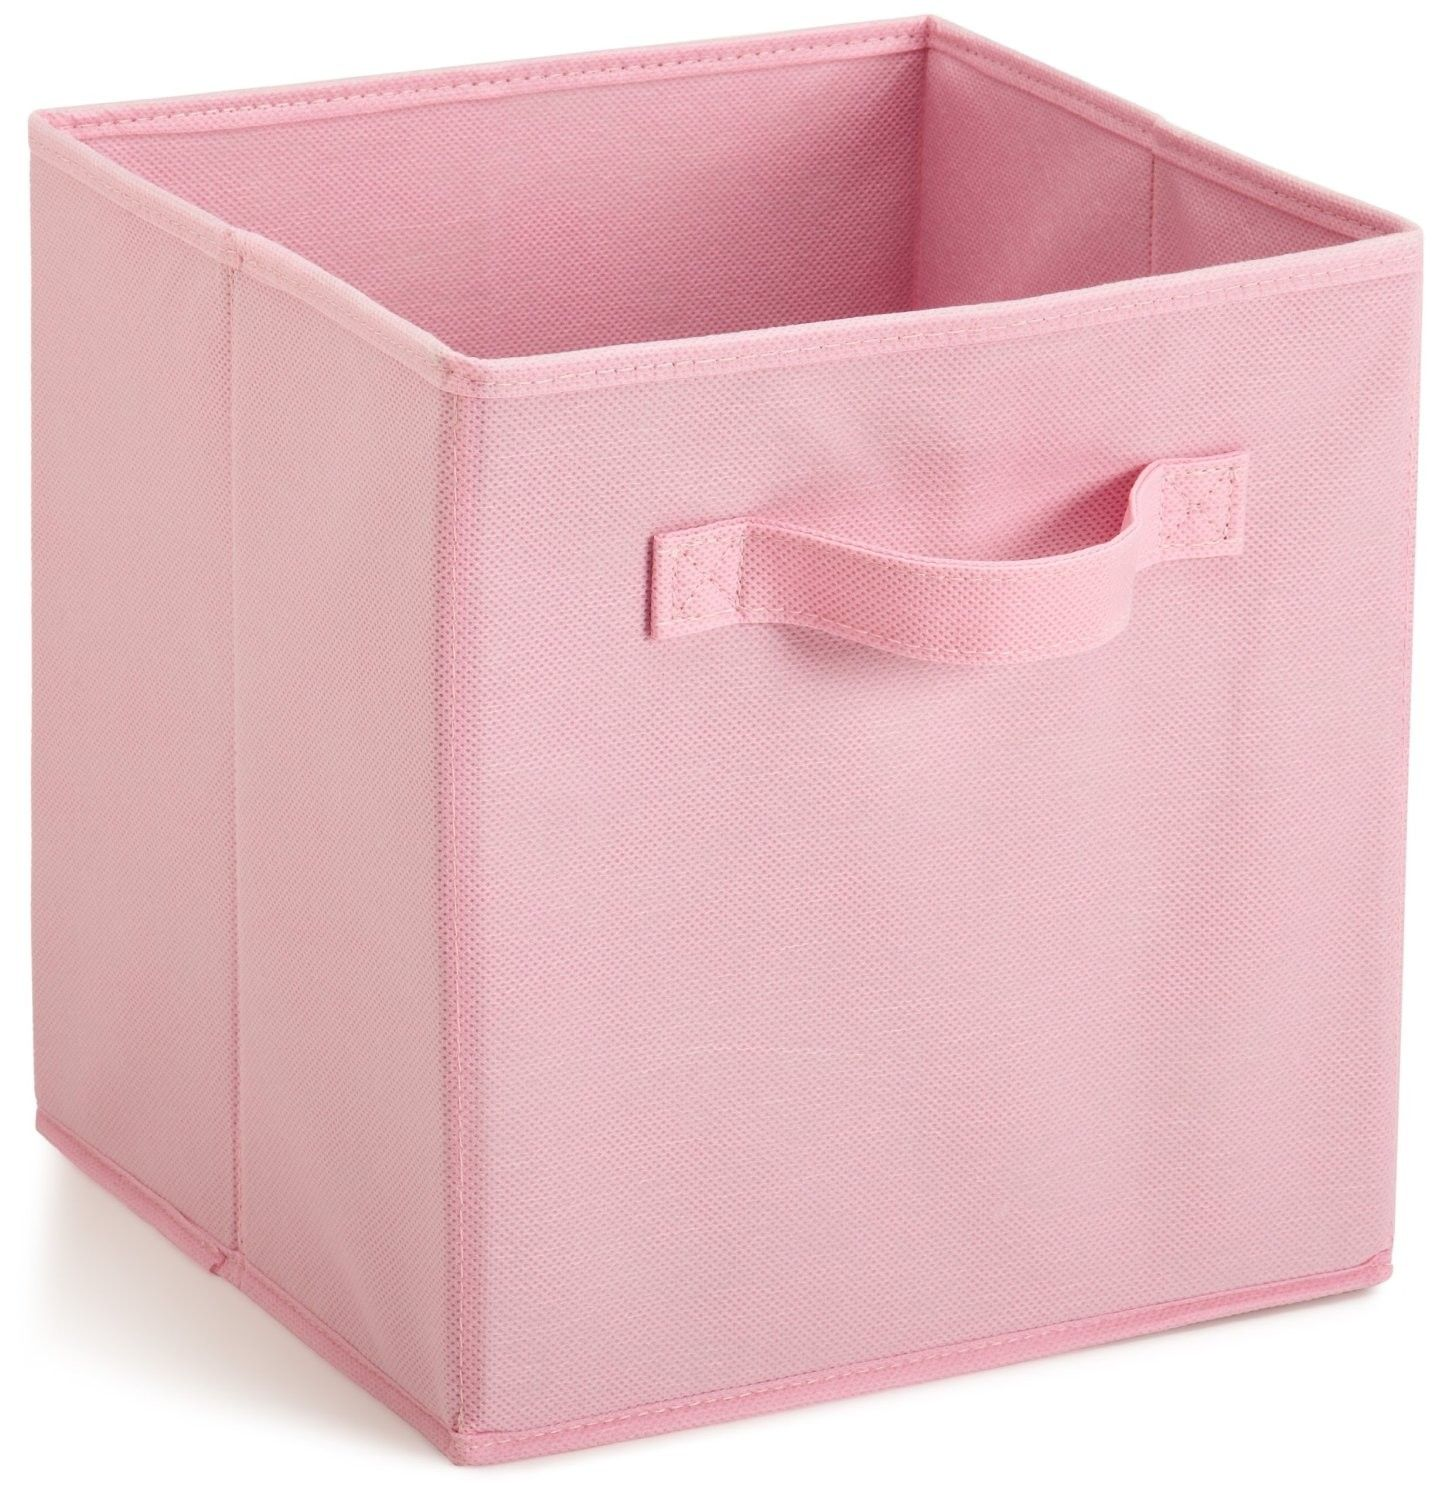 Closetmaid Fabric Bin Fabric Storage Bins Fabric Drawers Fabric Storage Cubes